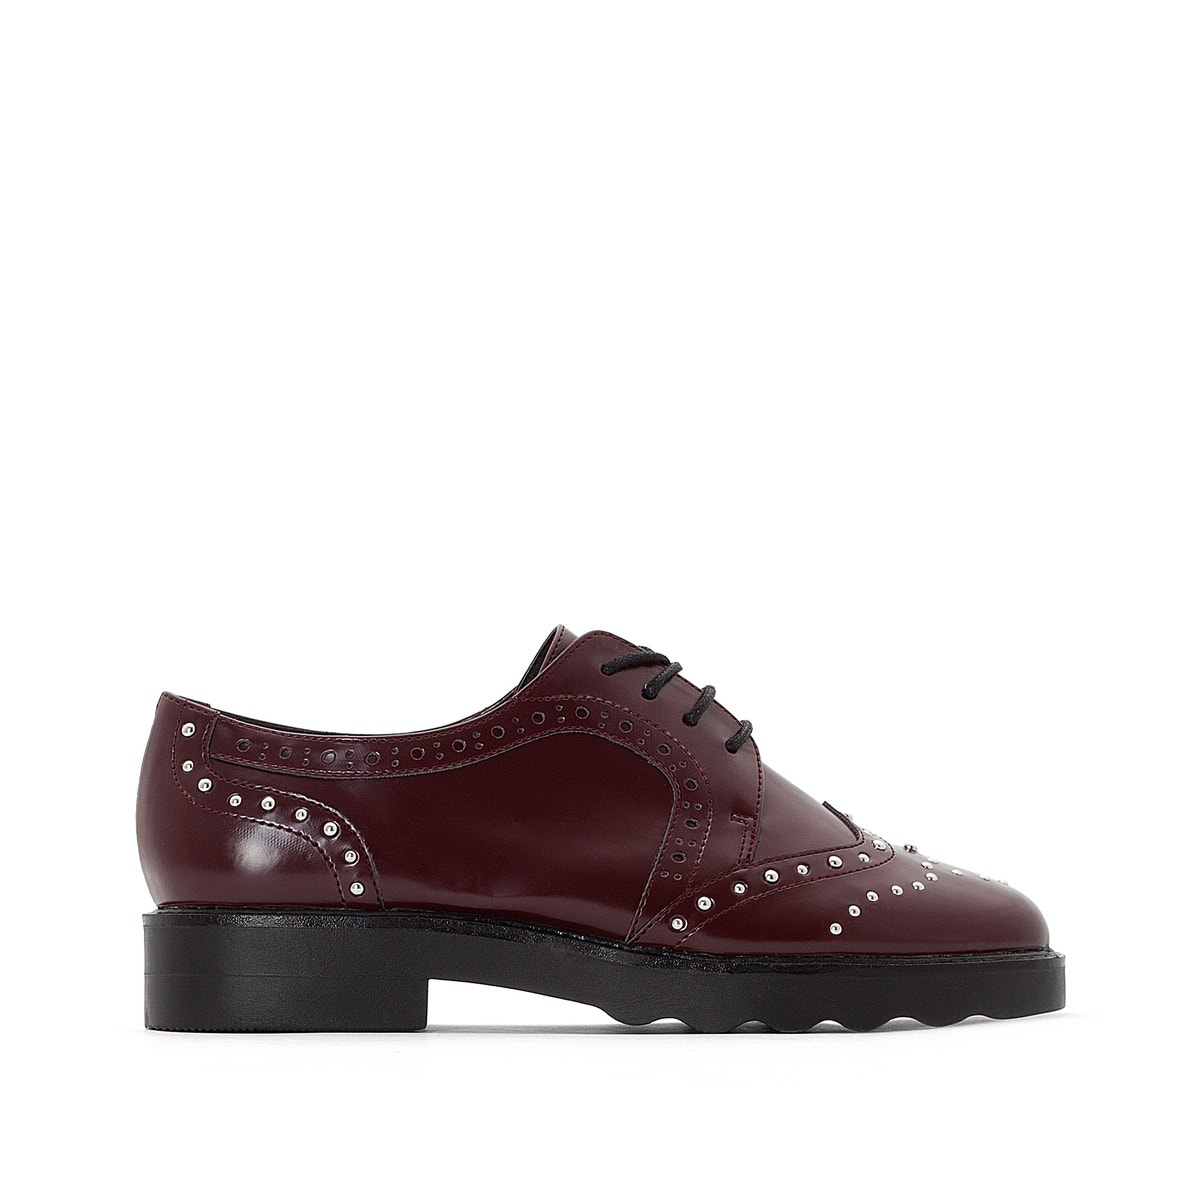 La Redoute Collections - La Redoute Collections 350115958. - 2254 γυναικεια   brogues   loafers